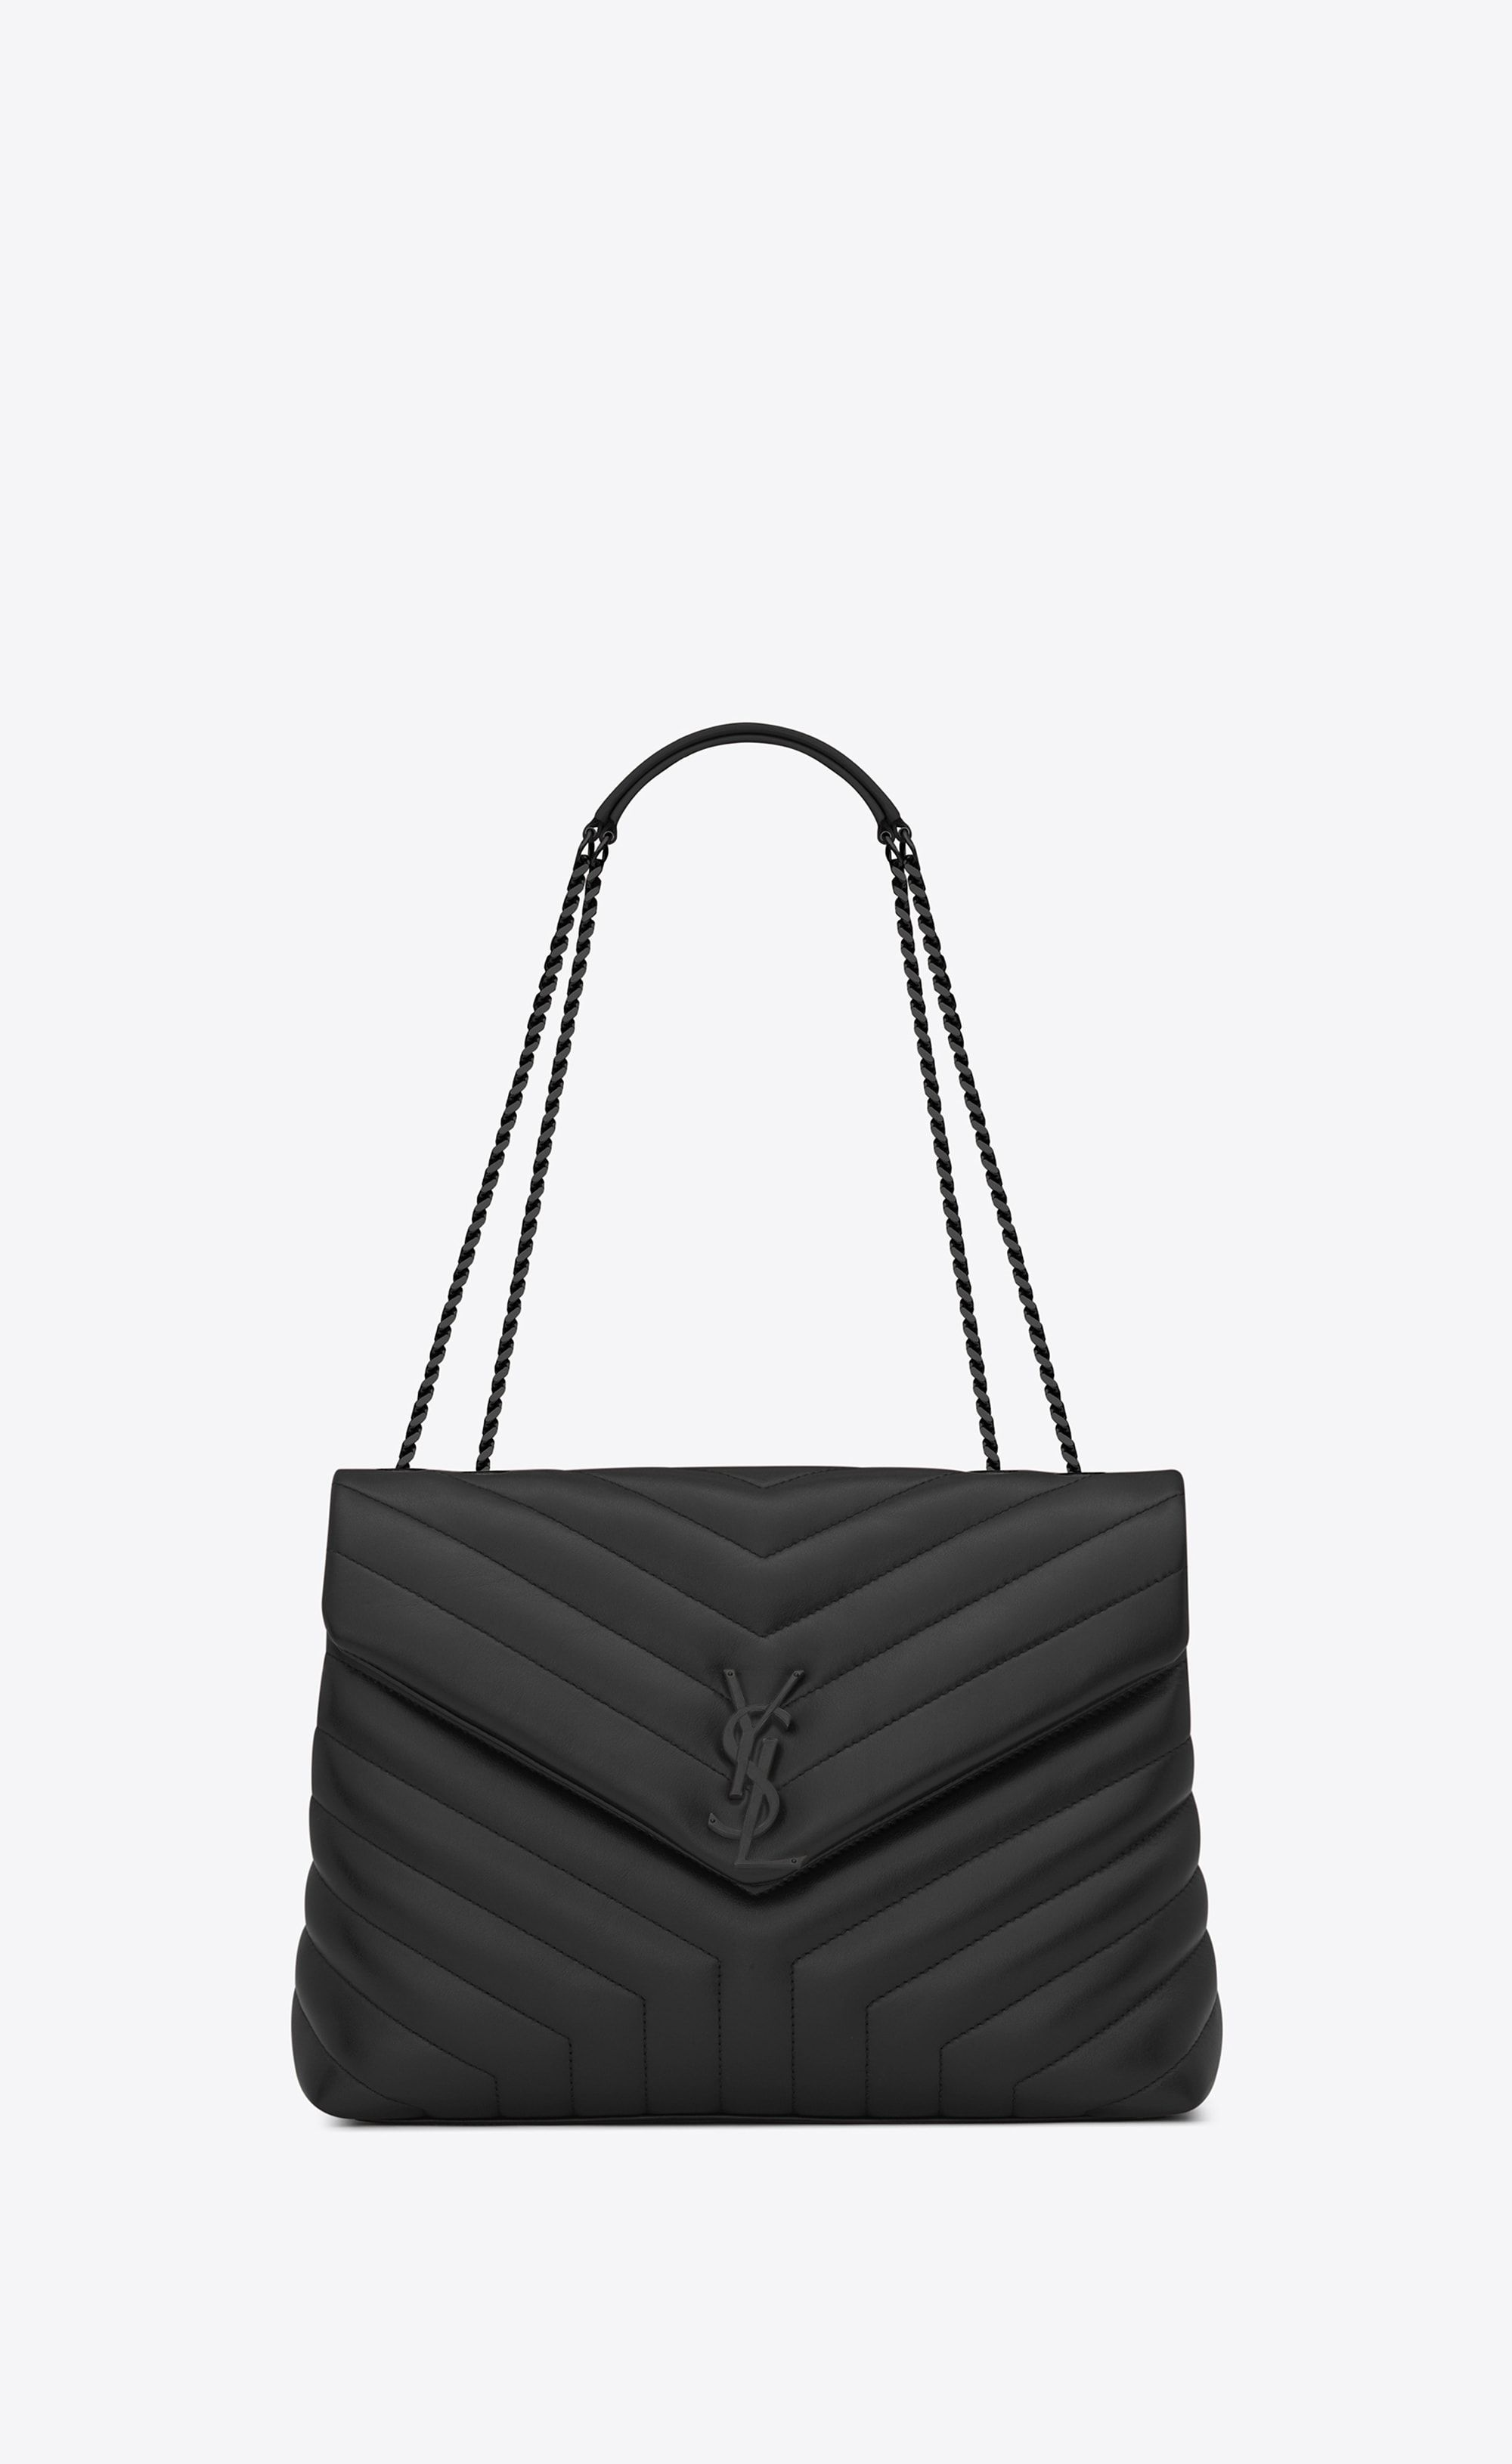 29f7528cb1 Saint Laurent Medium LOULOU Bag With Chain And Black